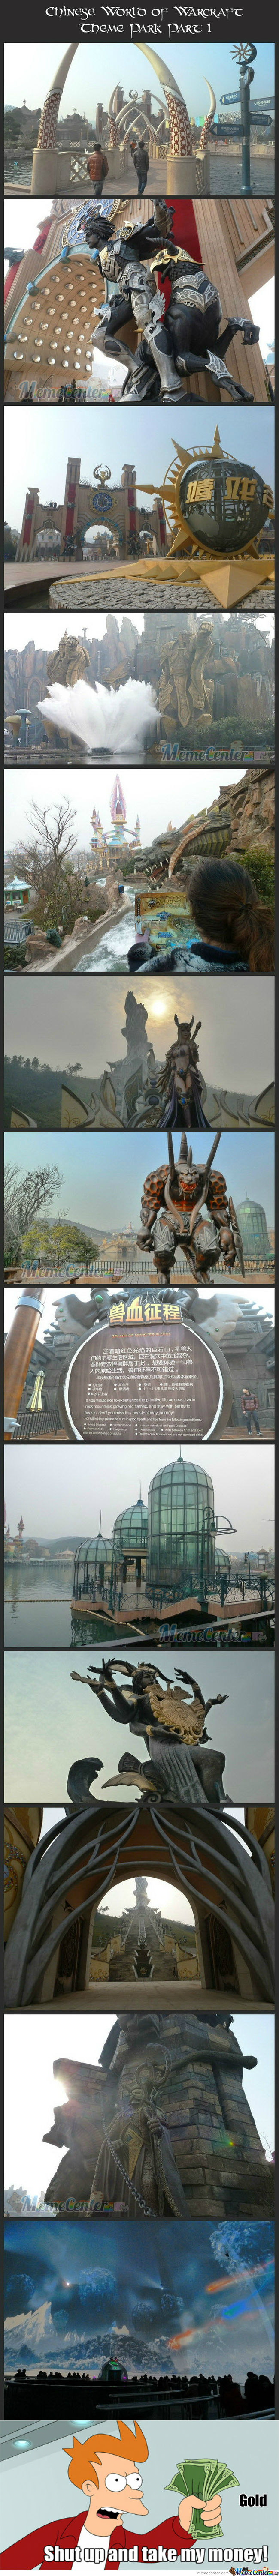 [RMX] Chinese World Of Warcraft Theme Park. 1/2